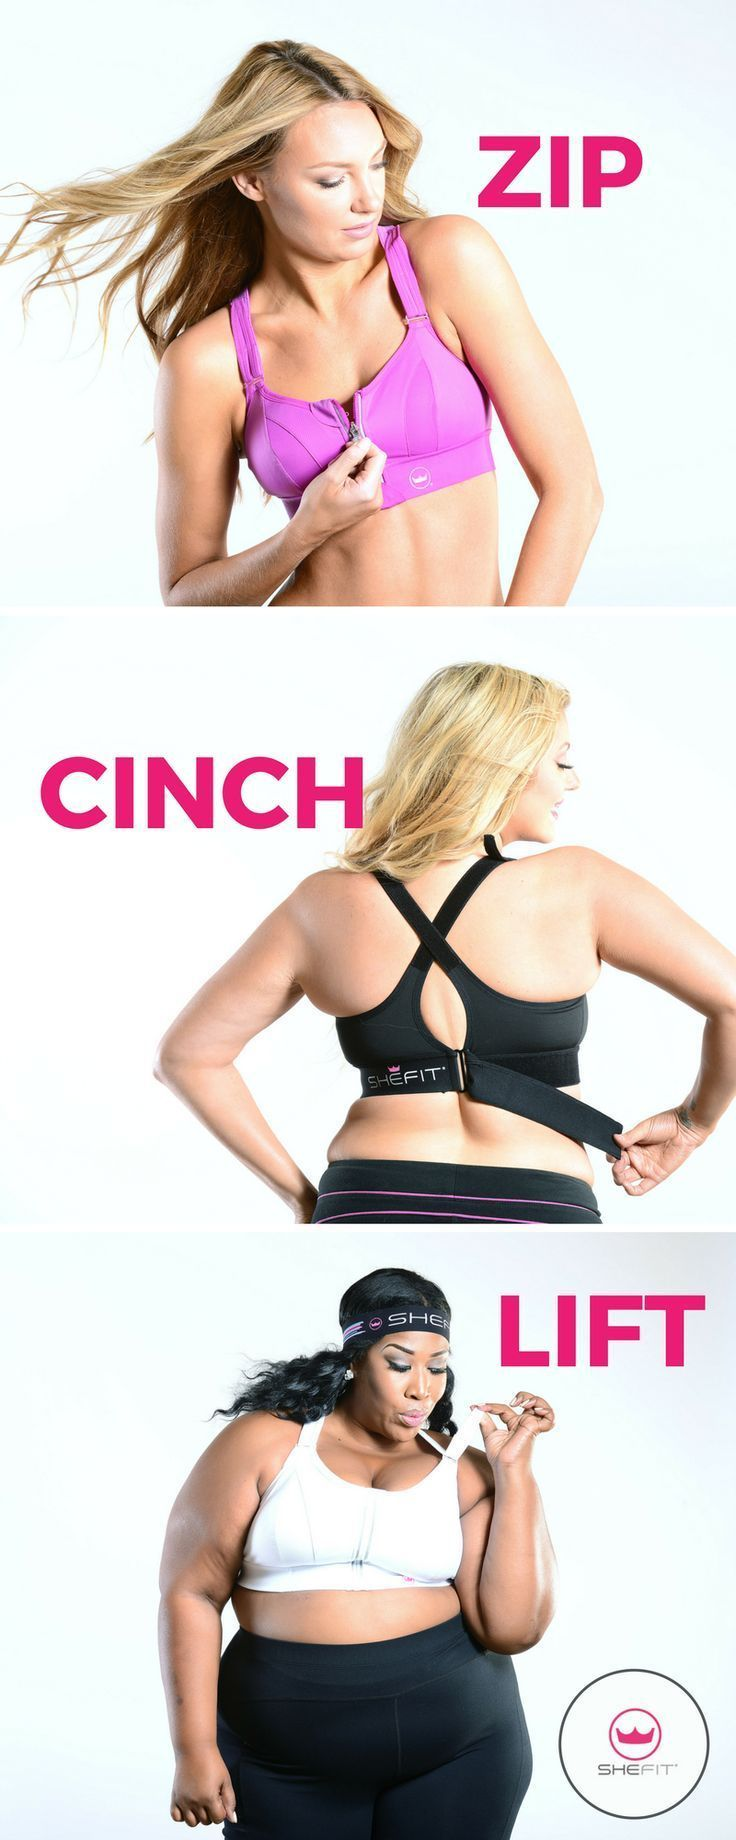 829b7fdcaf8c4 The Shefit Ultimate Sports Bra is the best sports bra for all women  regardless of age